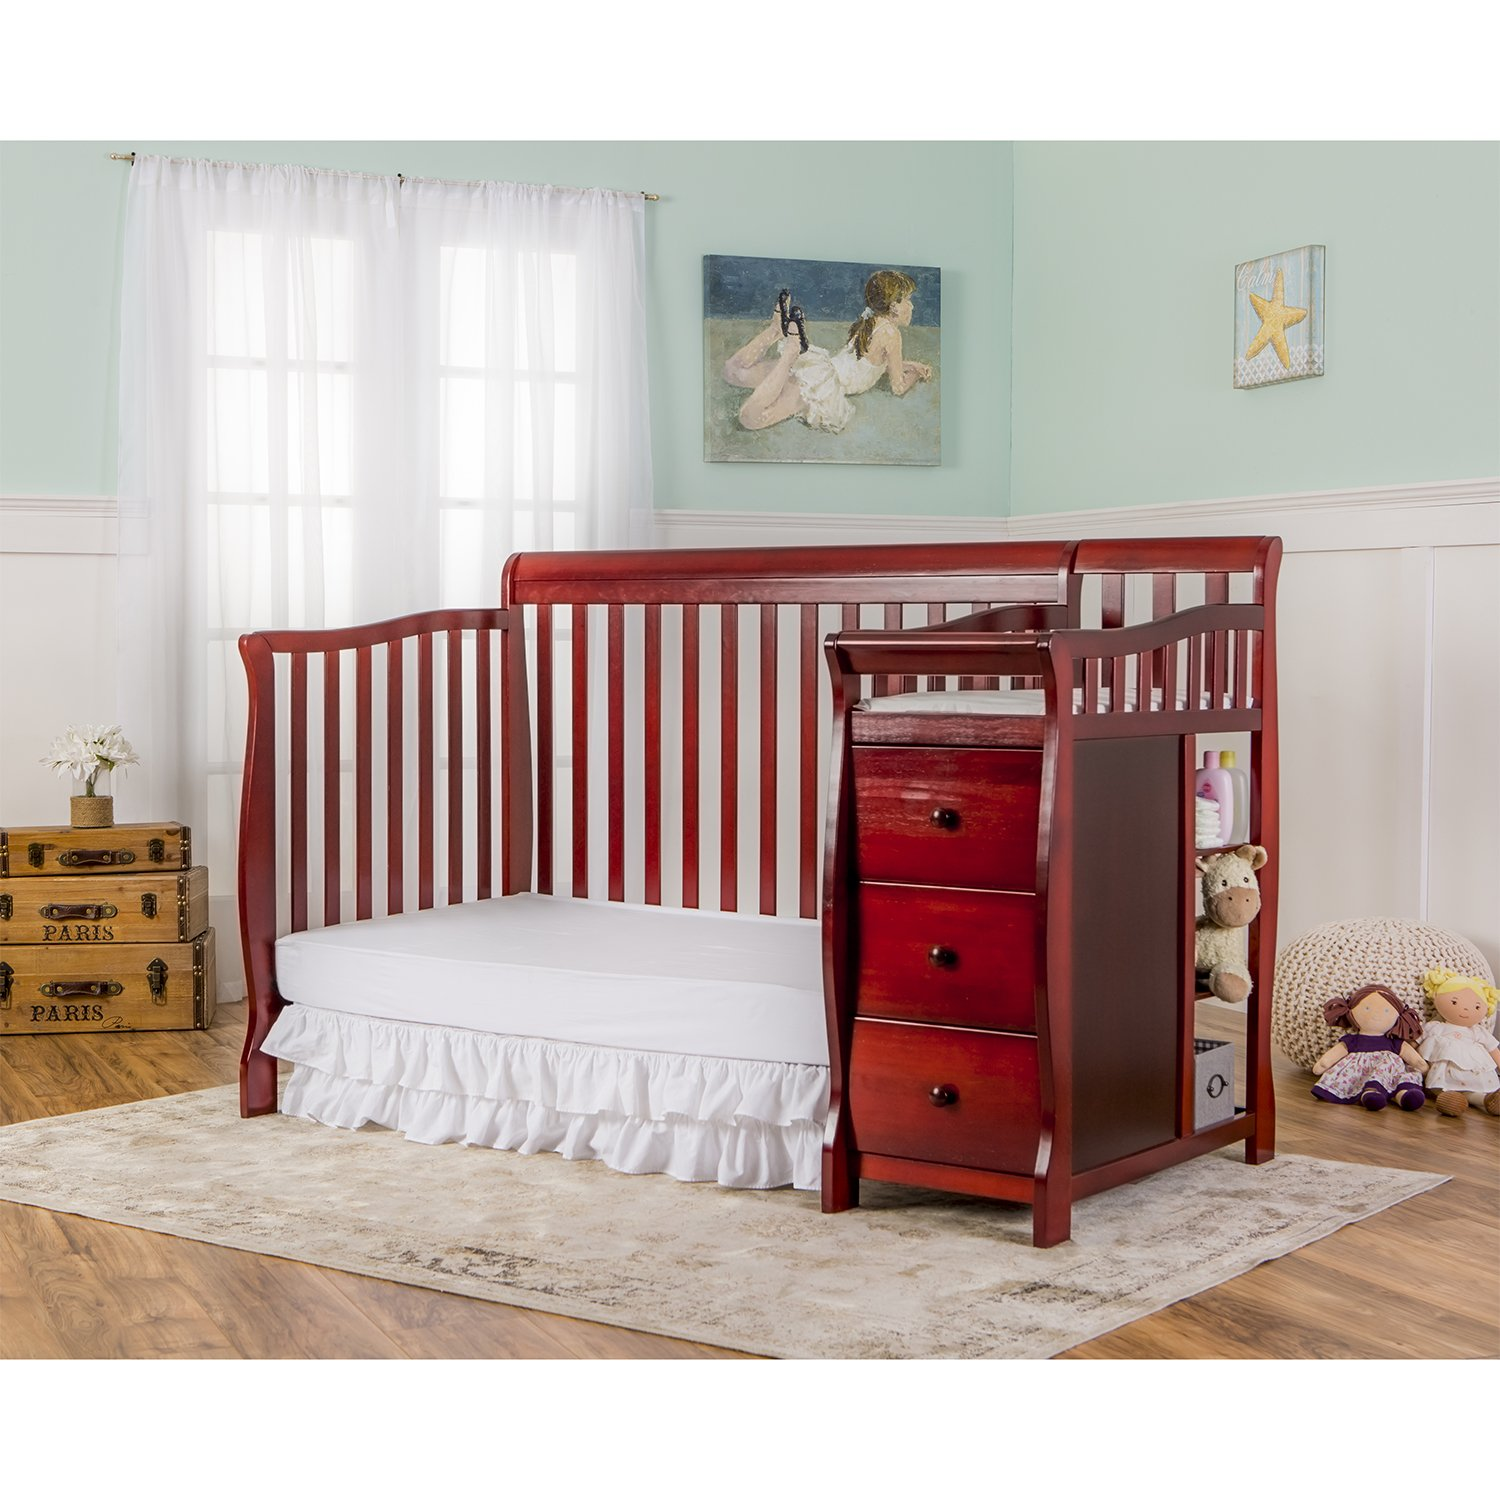 Baby cribs amazon - Amazoncom Dream On Me 5 In 1 Brody Convertible Crib With Changer Cherry Convertible Crib With Changing Table Attached Baby